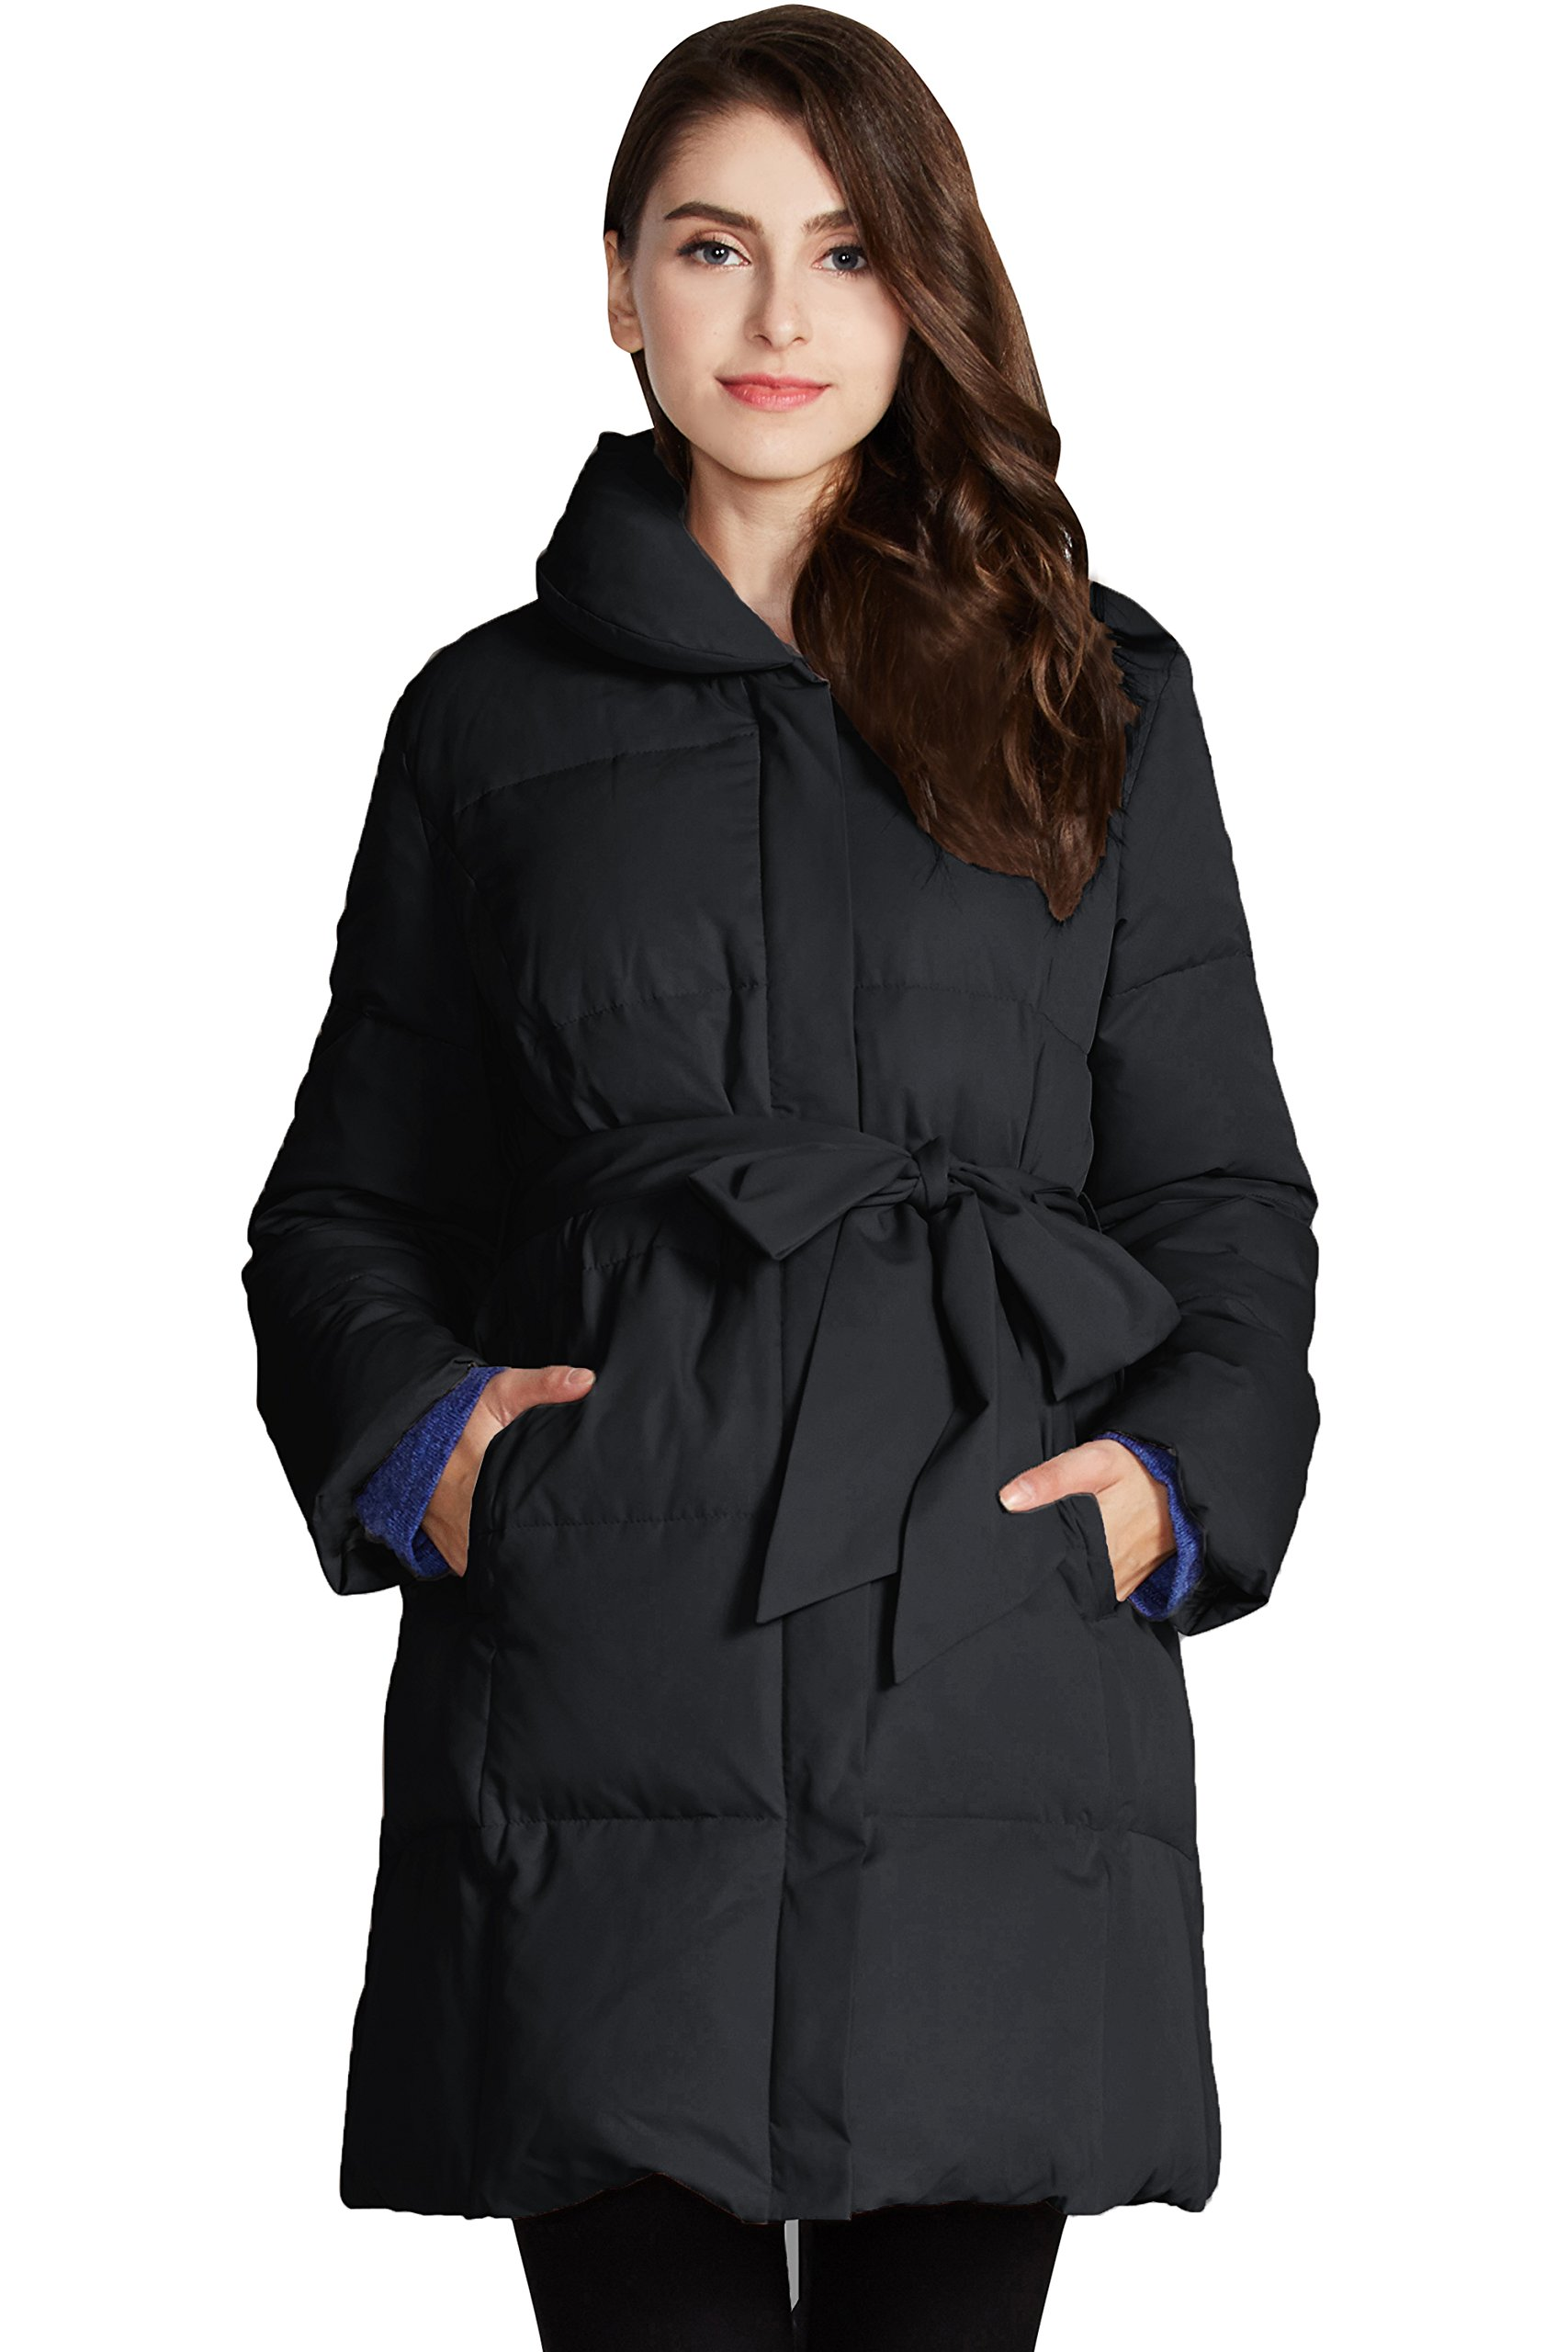 Sweet Mommy Maternity and Baby Wearing Down Coat Black, L